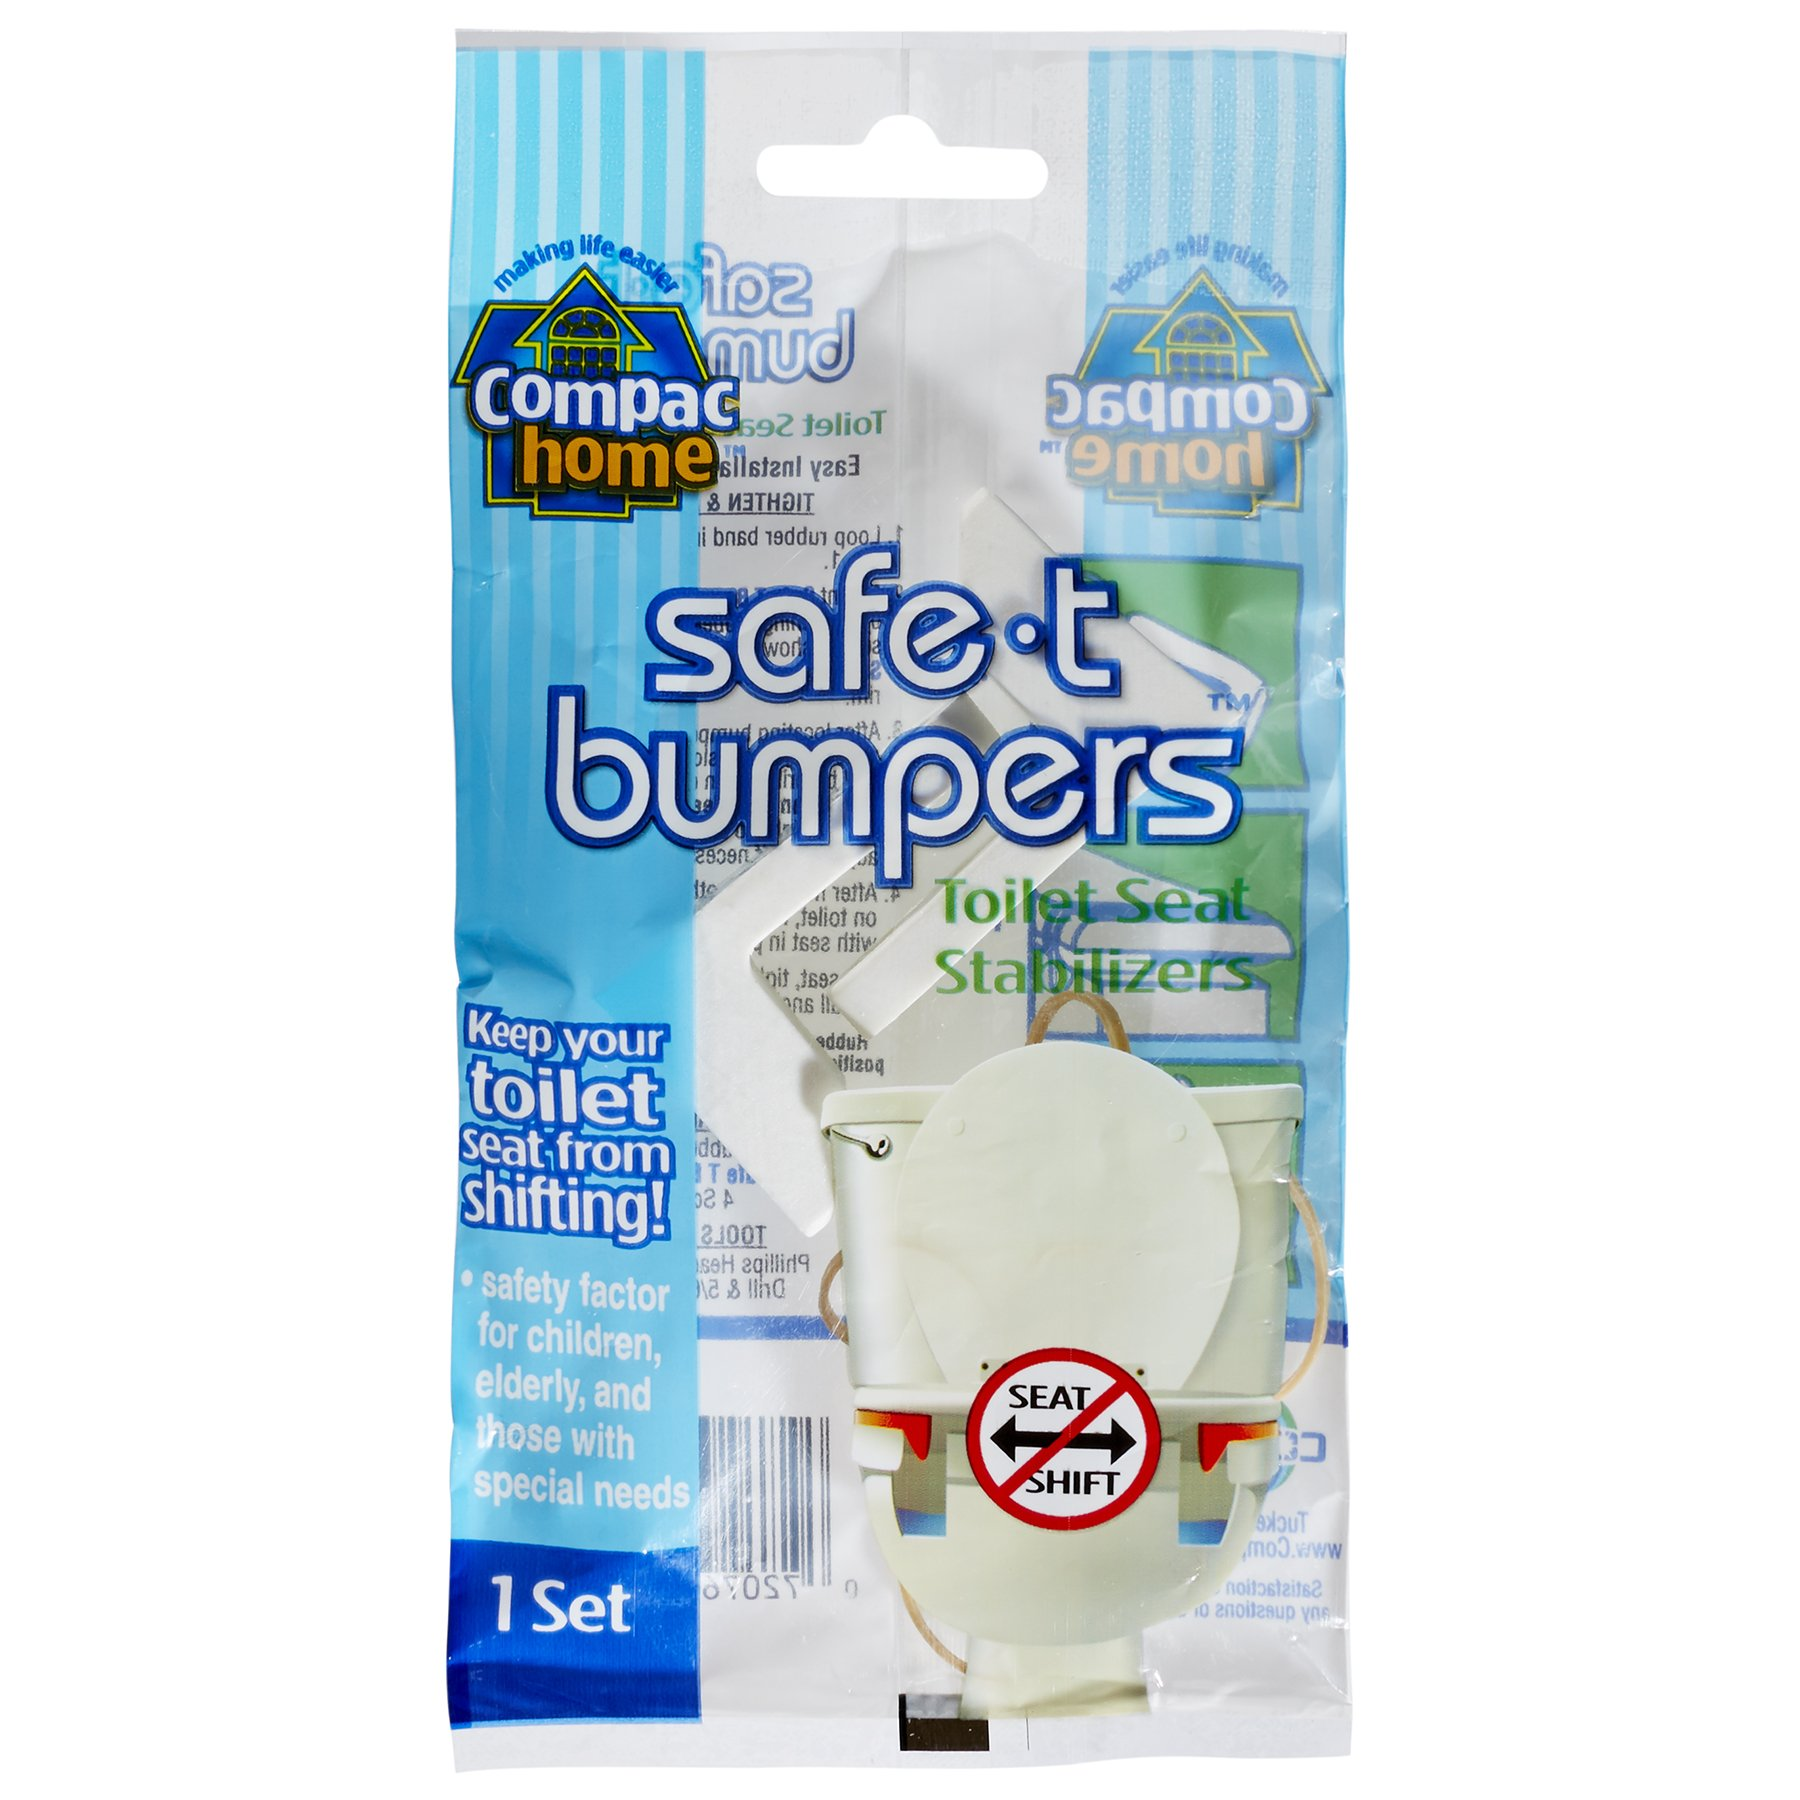 COMPAC HOME Compac's Stabilizers T Bumpers, Lock Place, Keeps Children, Elderly, Disabled Safe from Slipping Off Shaking, Moving or Wobbly Toilet Seat (1 Set), White, 1 Count (Pack of 1)